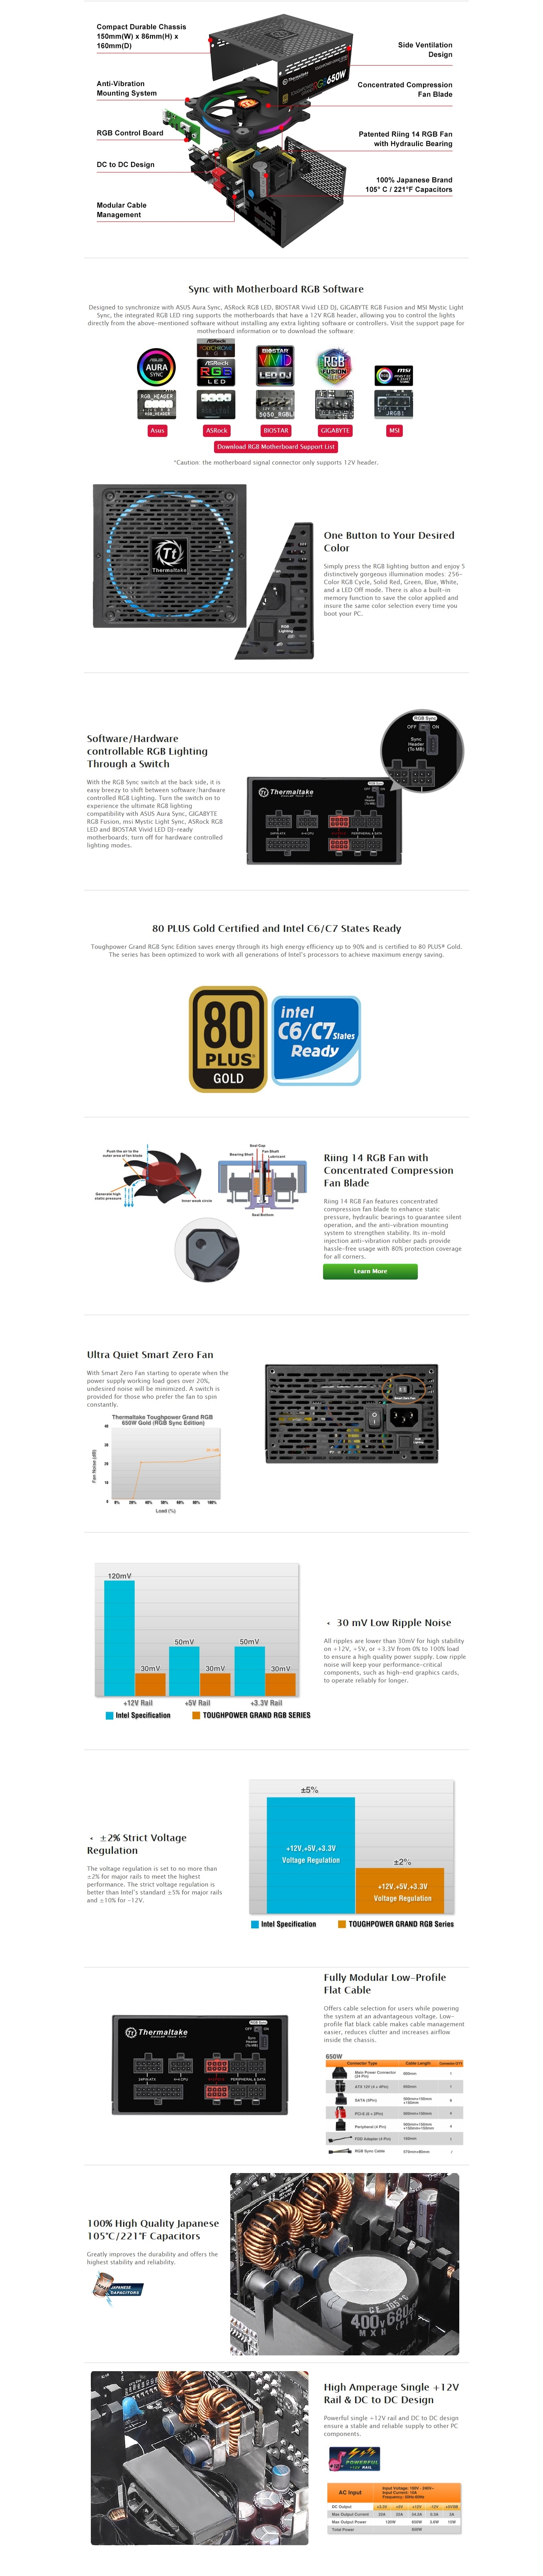 A large marketing image providing additional information about the product Thermaltake Toughpower Grand RGB 850W 80PLUS Gold (RGB Sync Edition) Power Supply - Additional alt info not provided